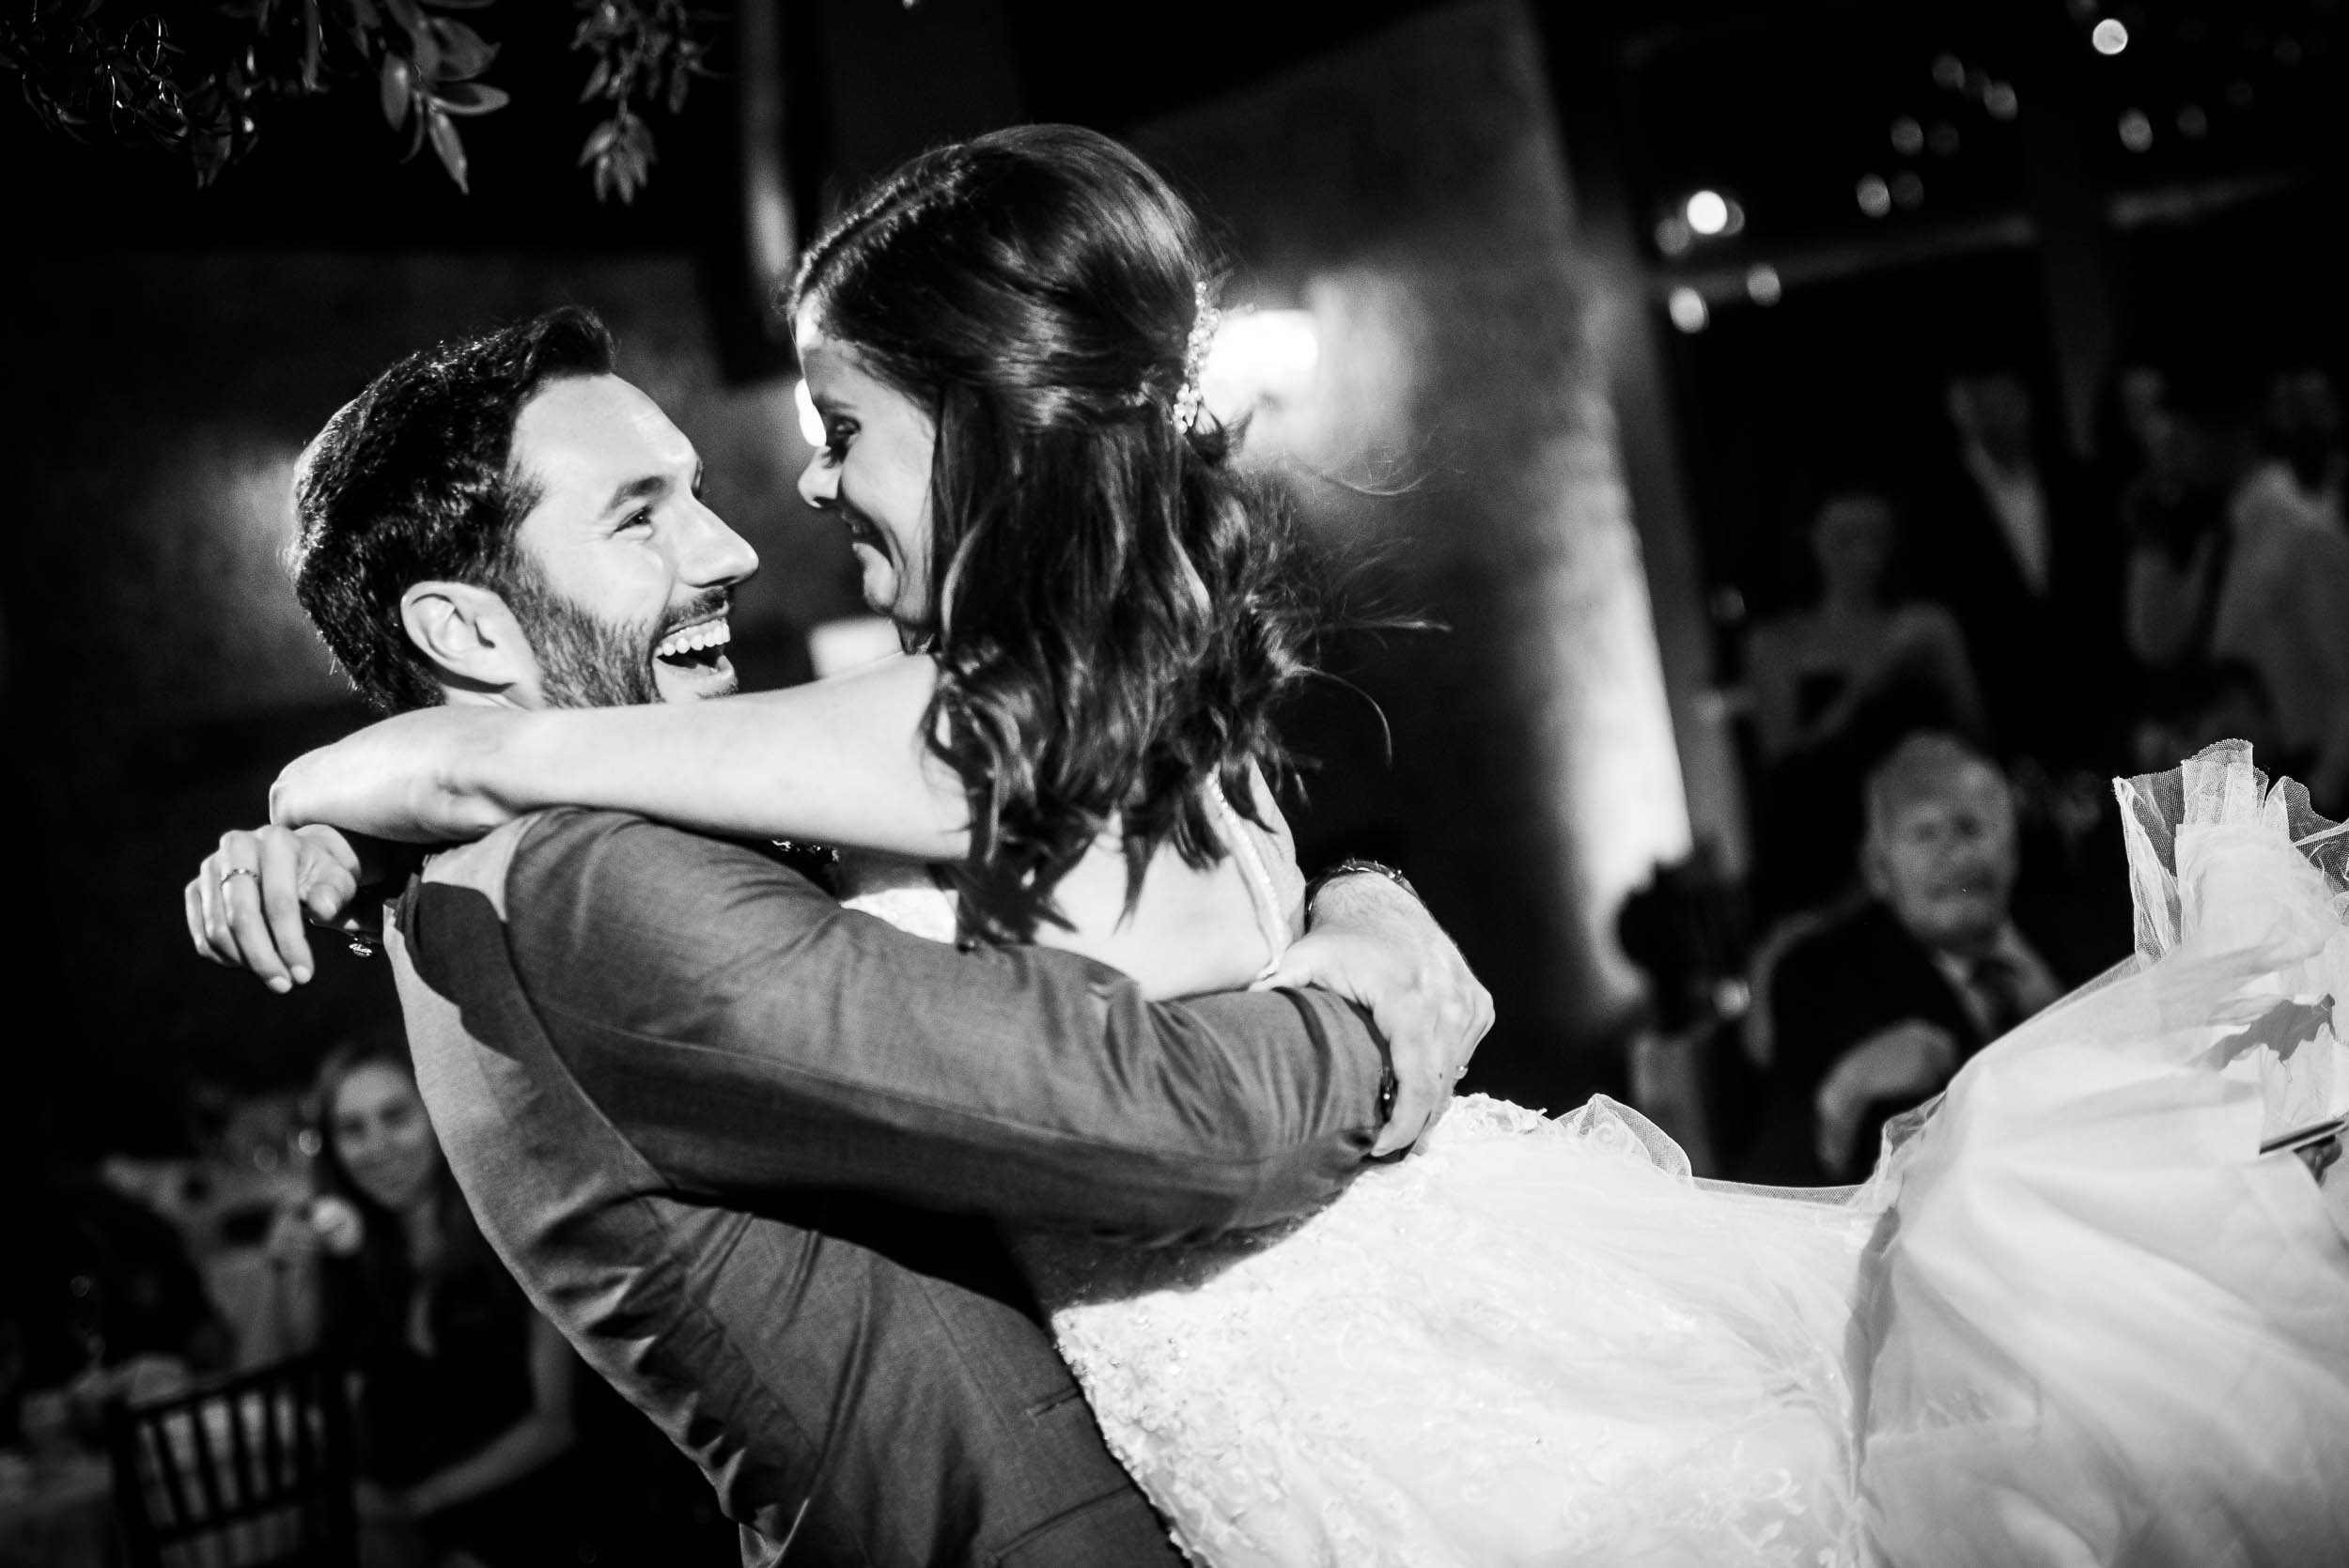 Bride and groom's first dance at Grand Geneve Resort Fall Chicago Wedding captured by J. Brown Photography. Visit jbrownphotography.com for more wedding inspiration!